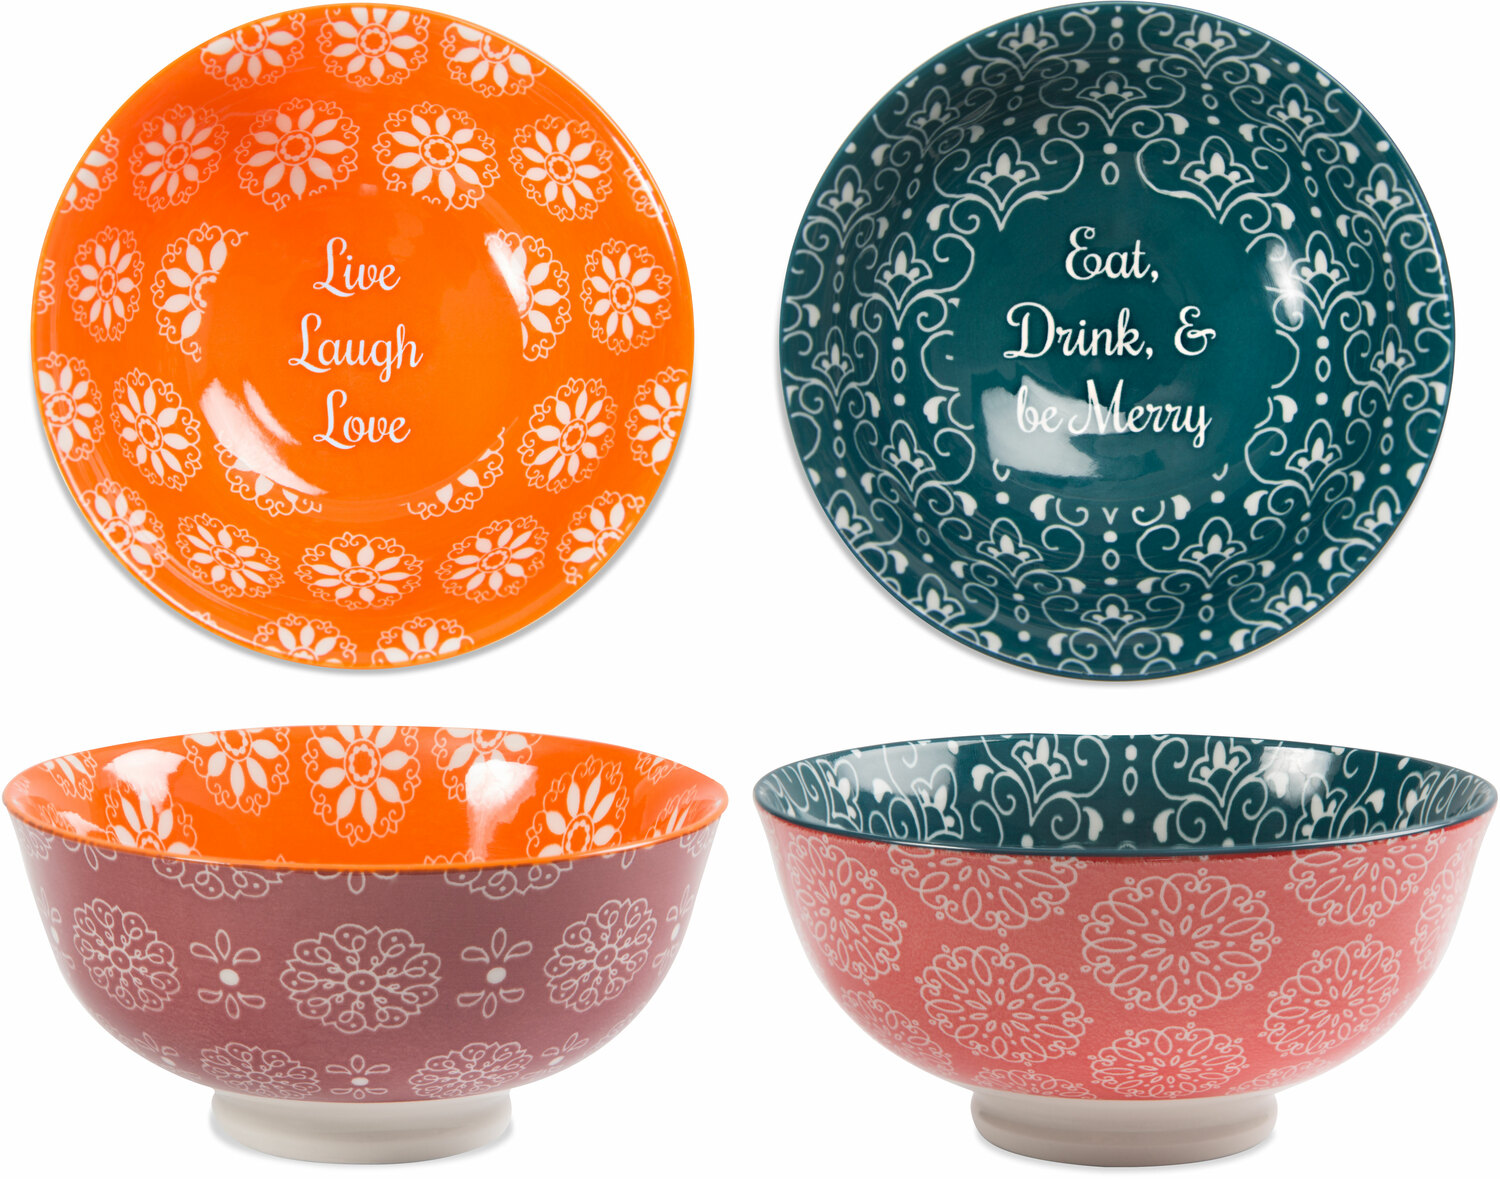 "Be Merry & Love by Cinnamon Swirl - Be Merry & Love - 4.75"" Porcelain Bowl Set"